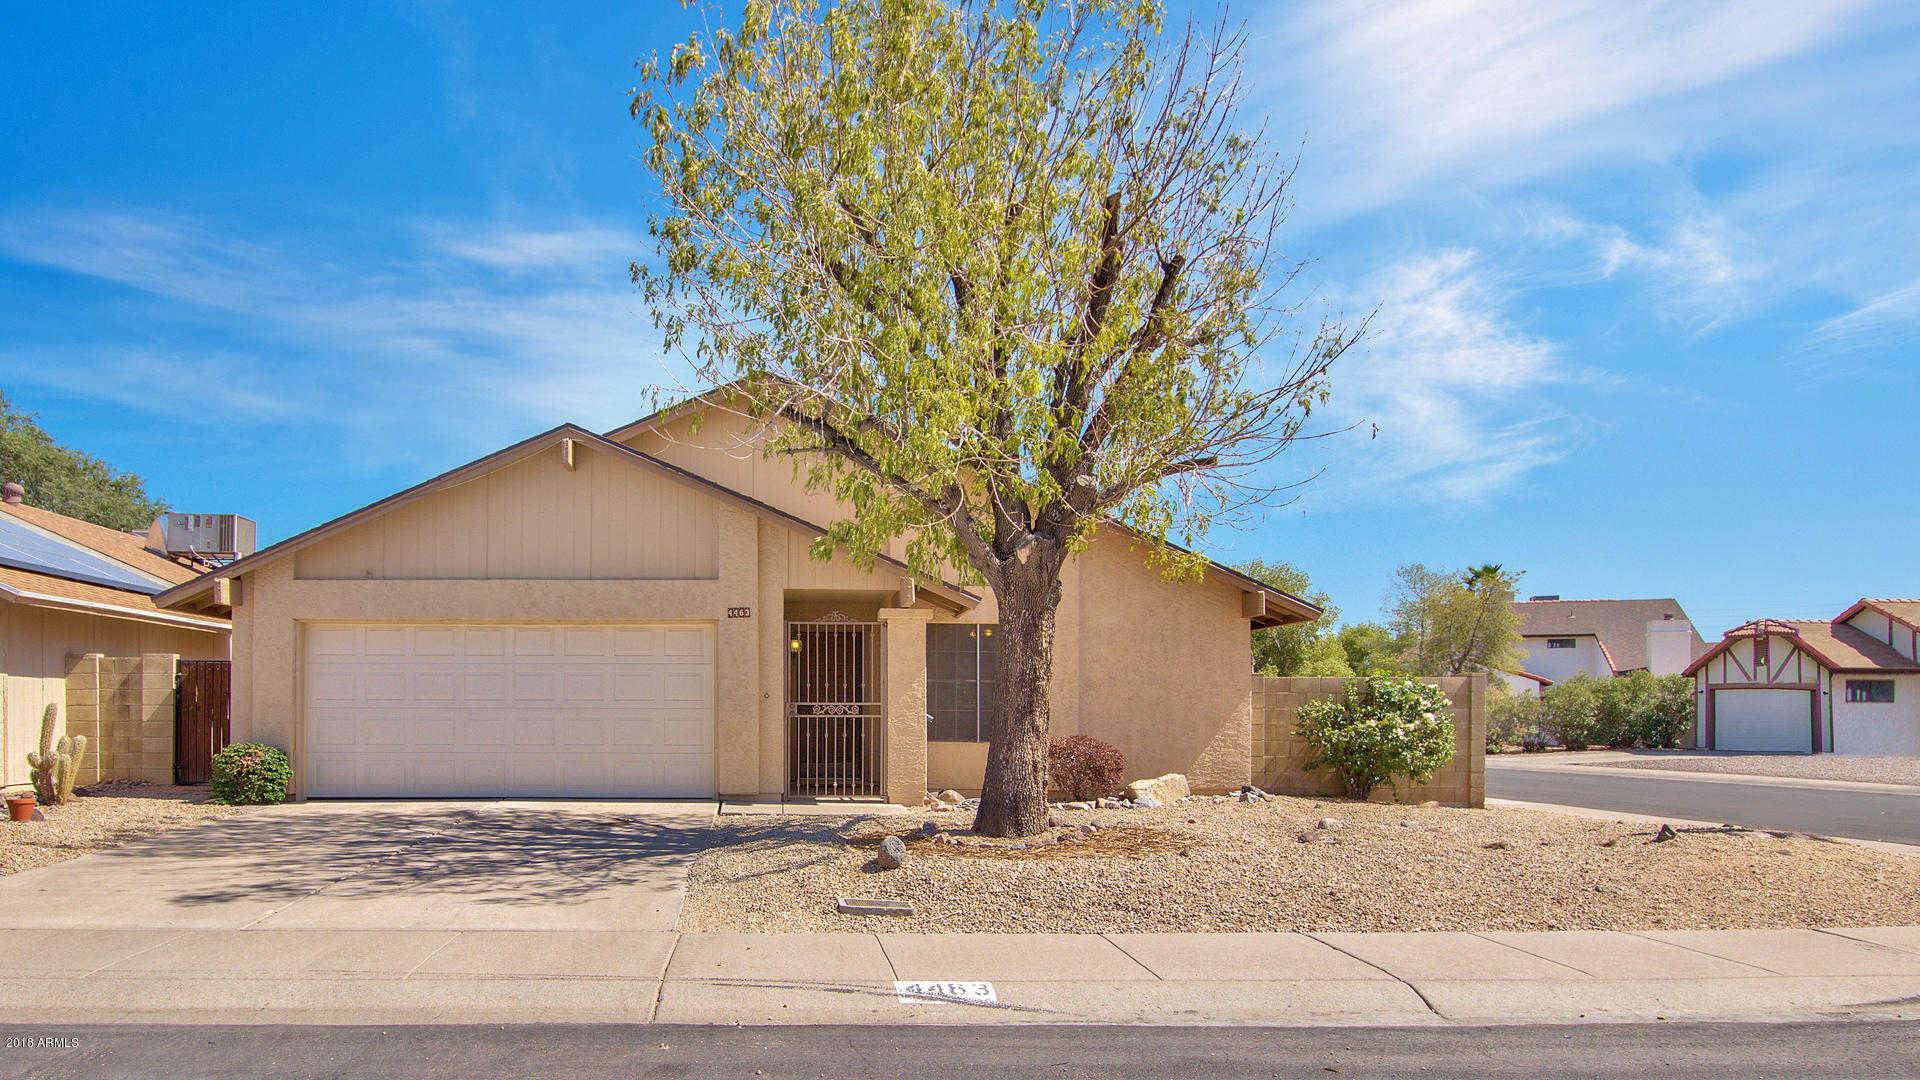 $230,000 - 3Br/2Ba - Home for Sale in Village At Canyon View Lot 1-187 Tr A-h, Glendale